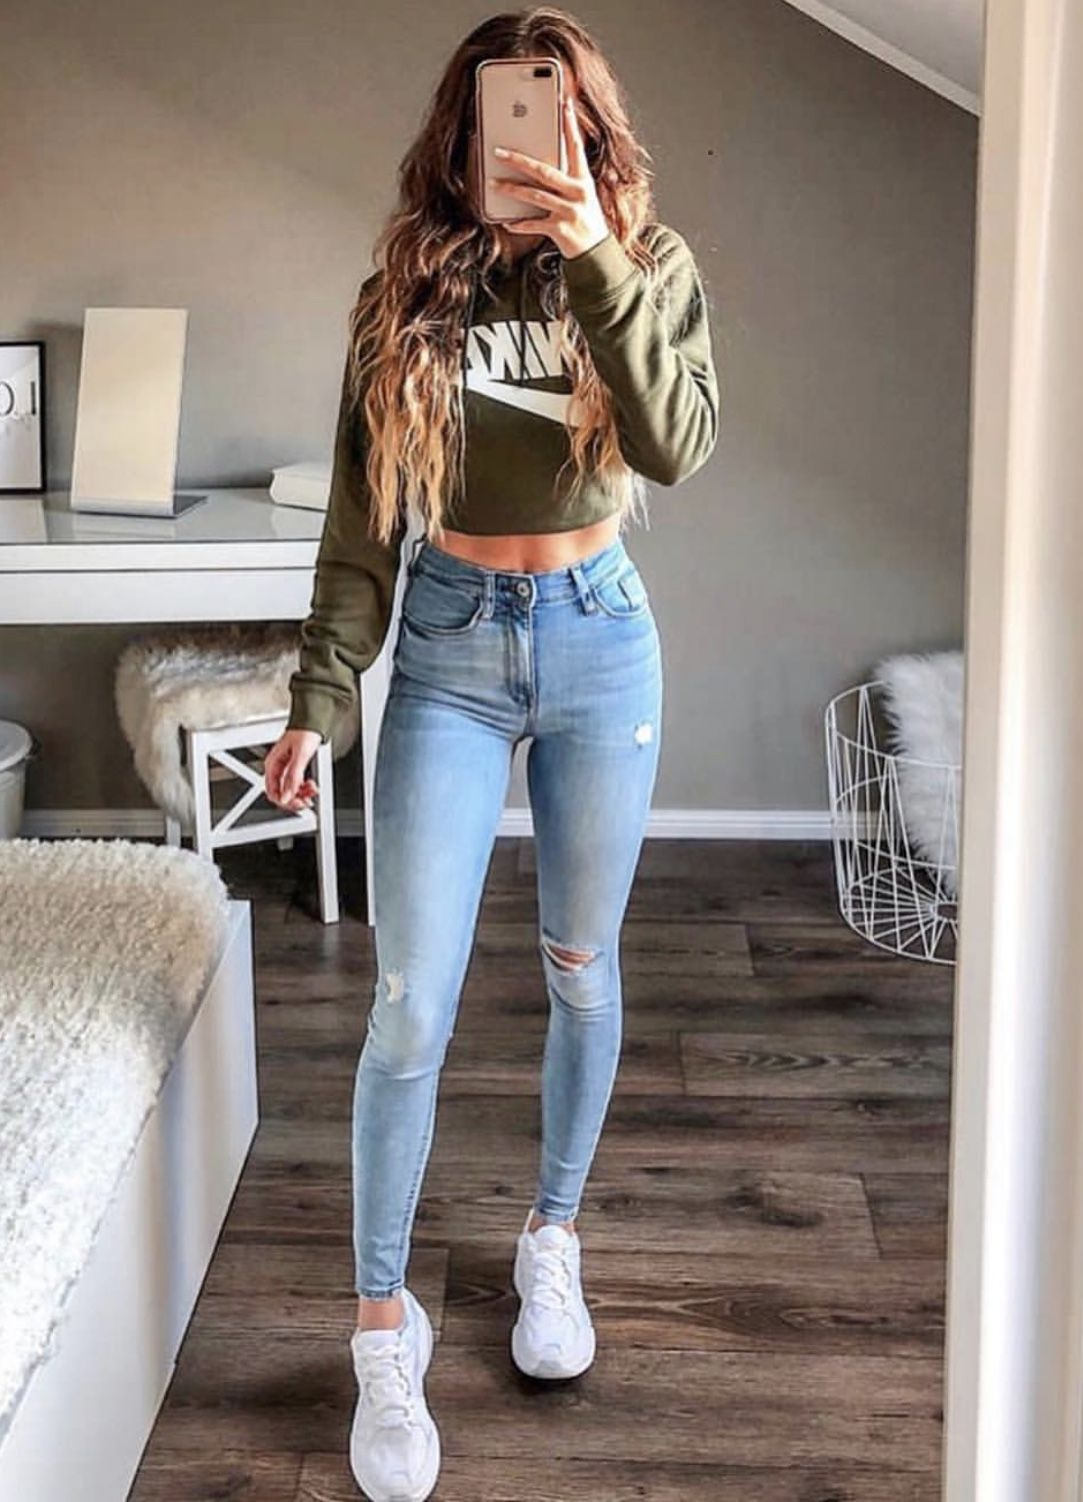 Follow Me Just A Ginger With Images Pinterest Outfits Cute